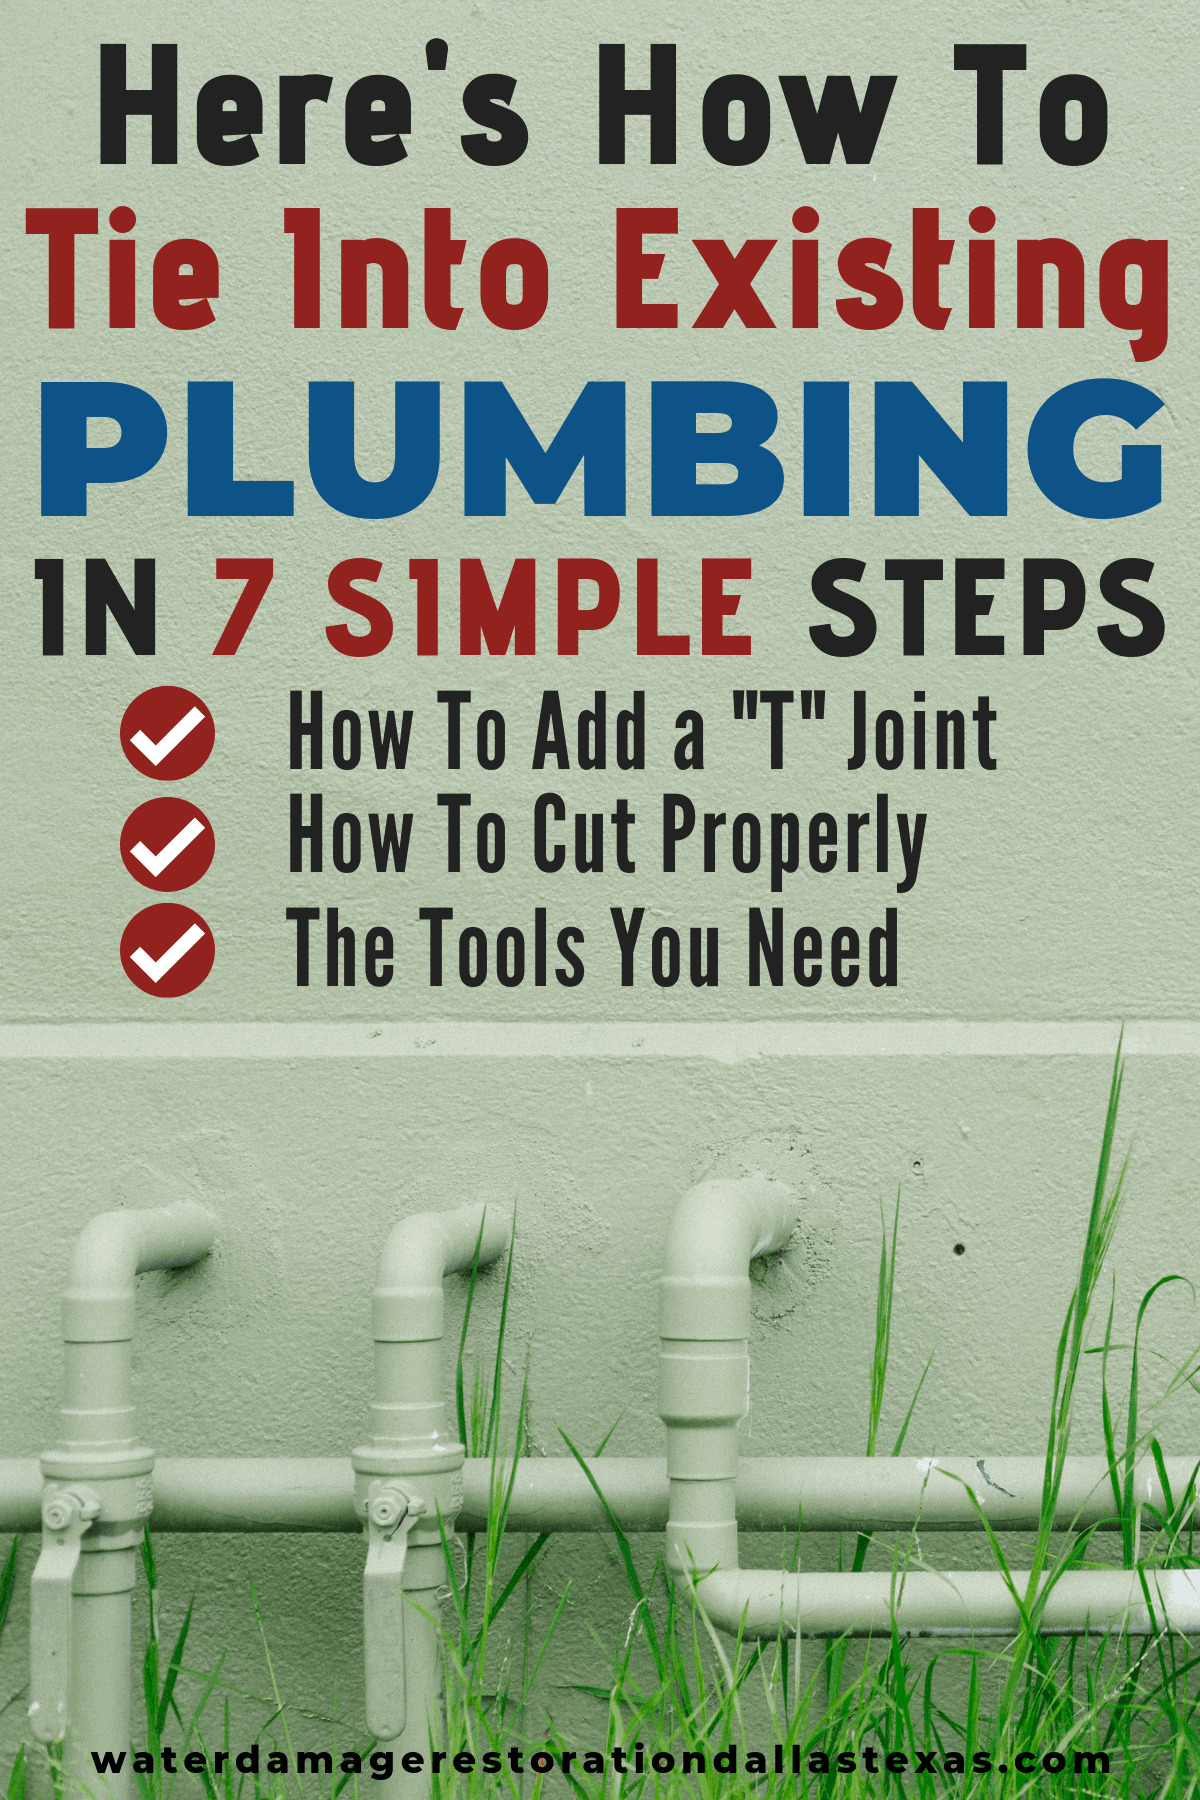 how to tie into existing plumbing